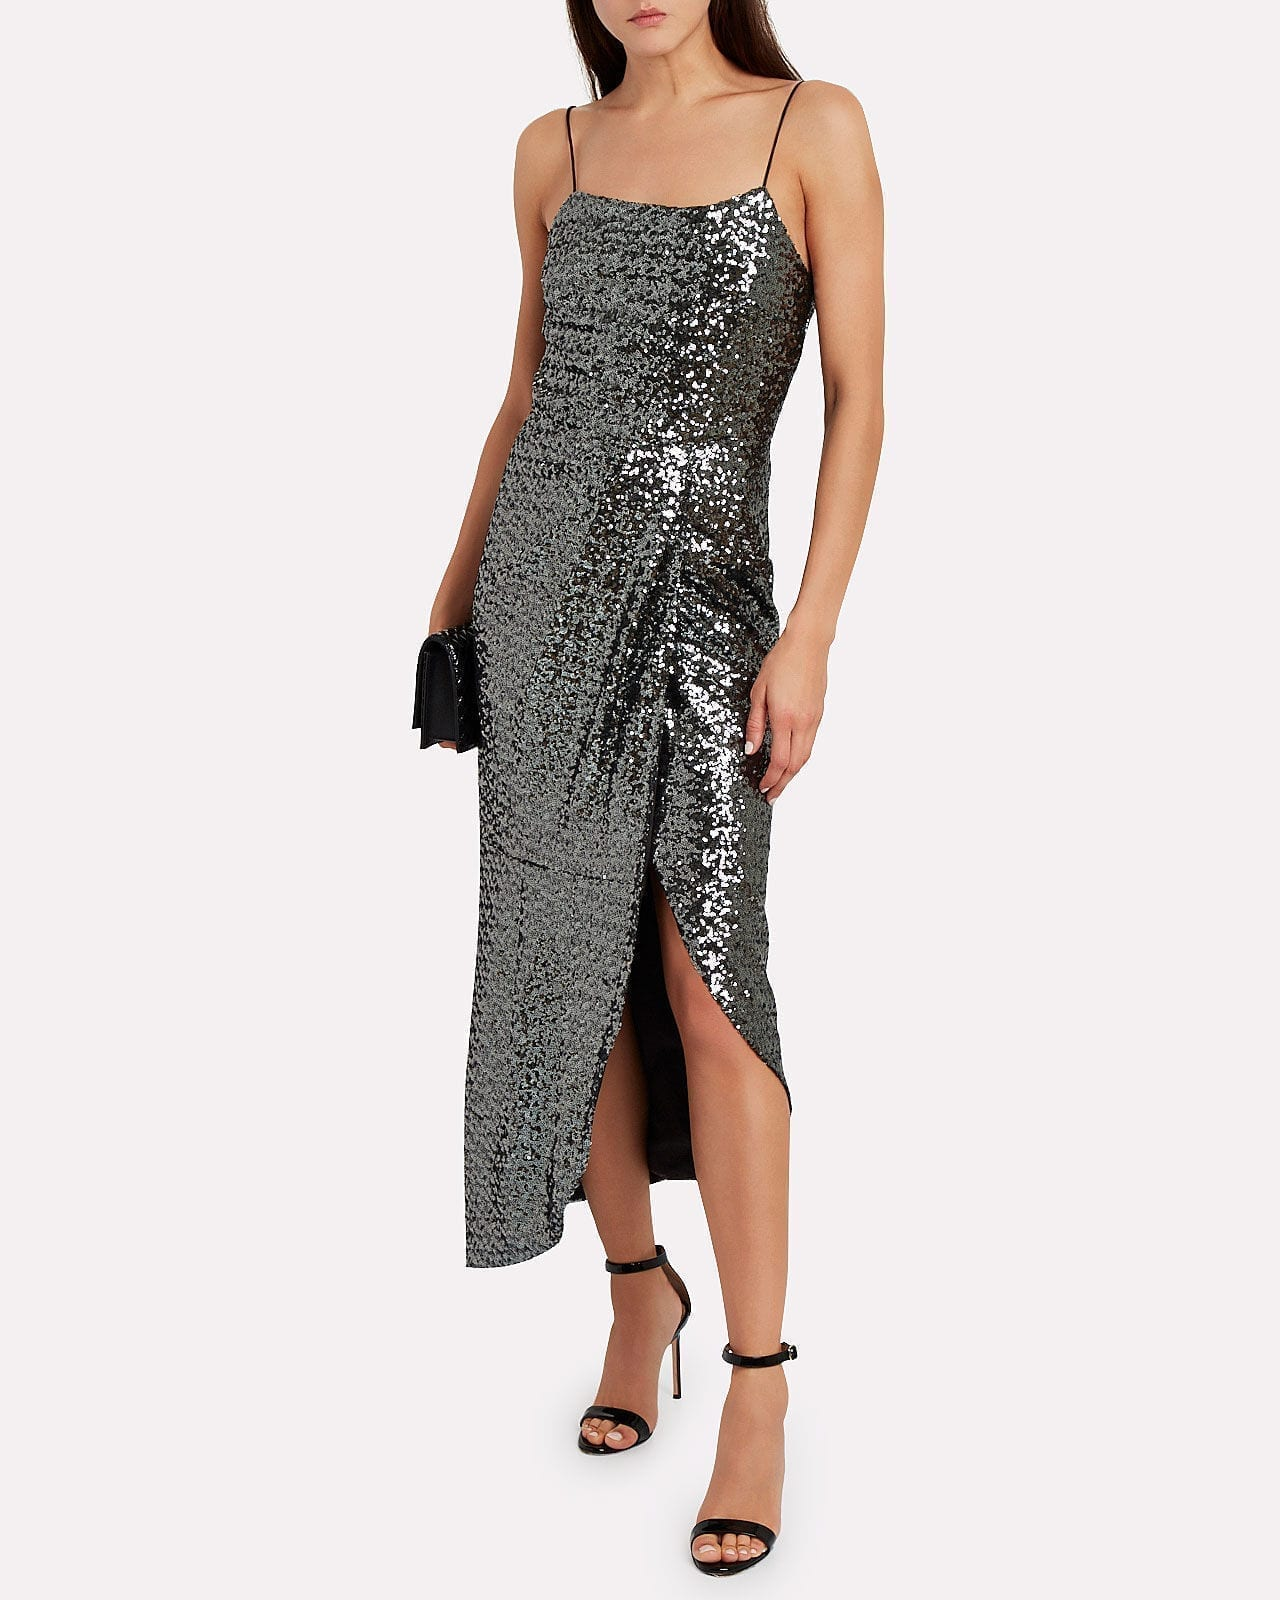 DEREK LAM 10 CROSBY Lexis Sequined Sarong Dress